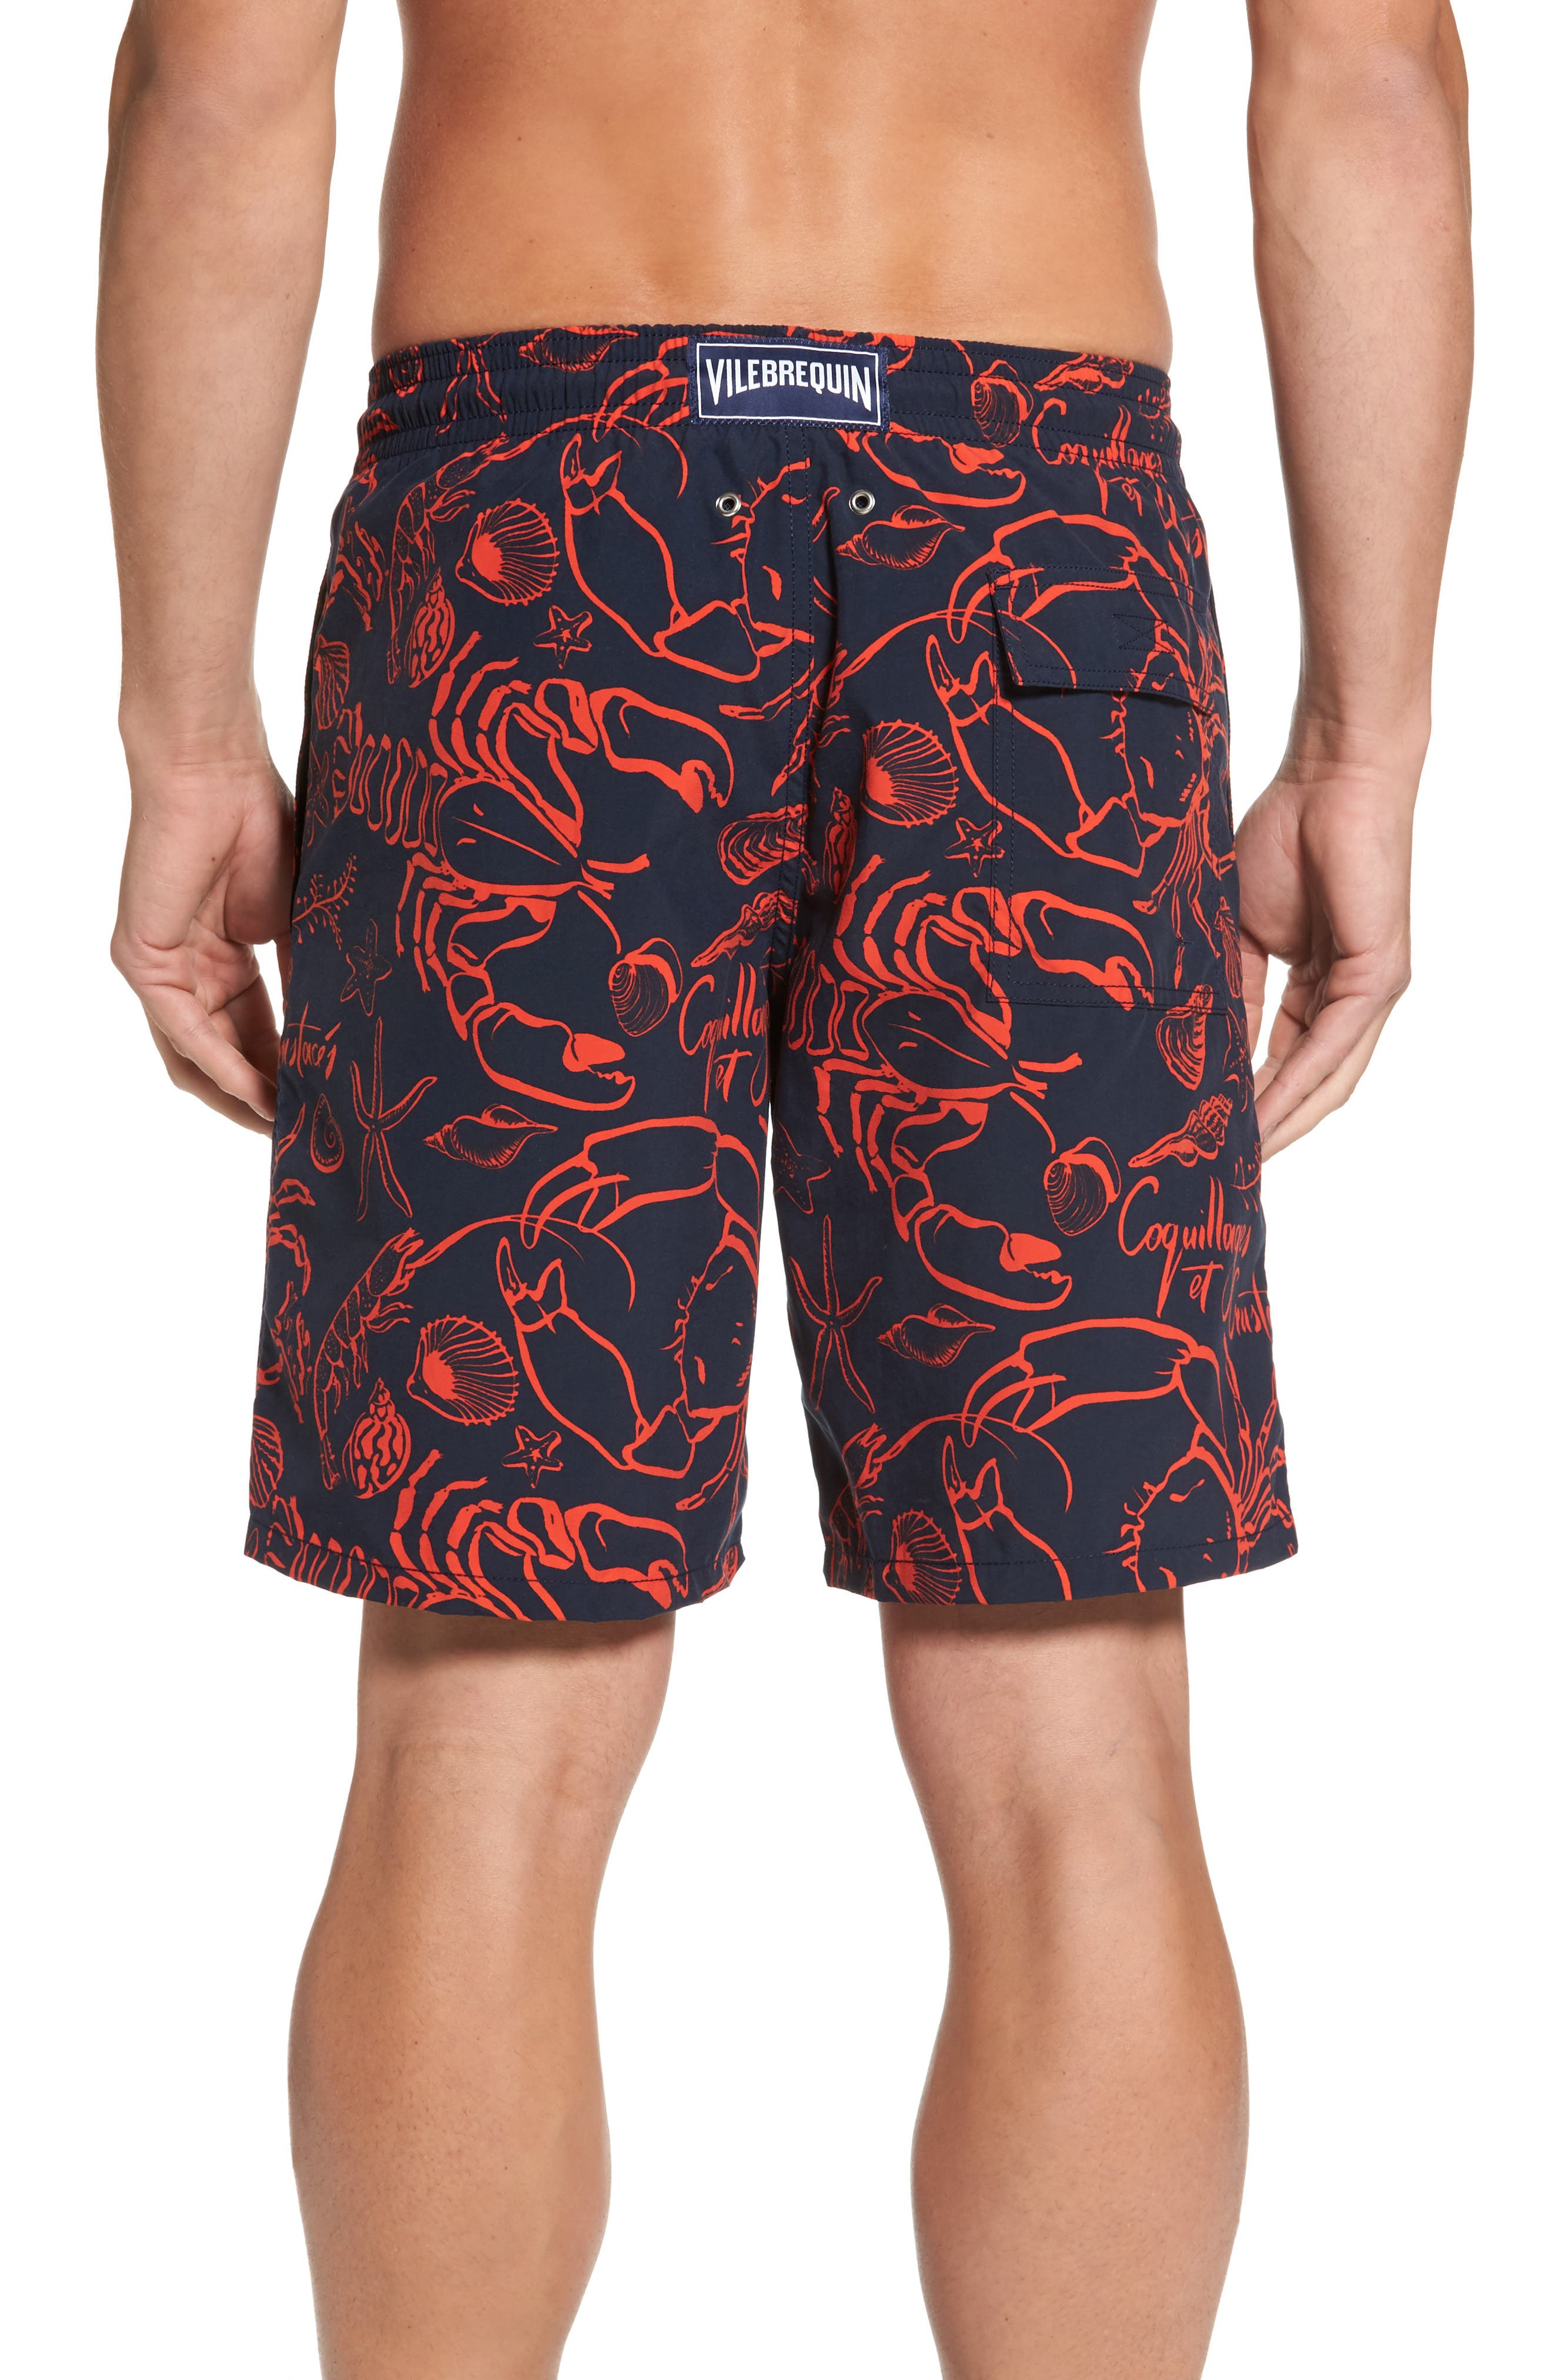 Okoa Shellfish Swim Trunks,                             Alternate thumbnail 2, color,                             NAVY BLUE